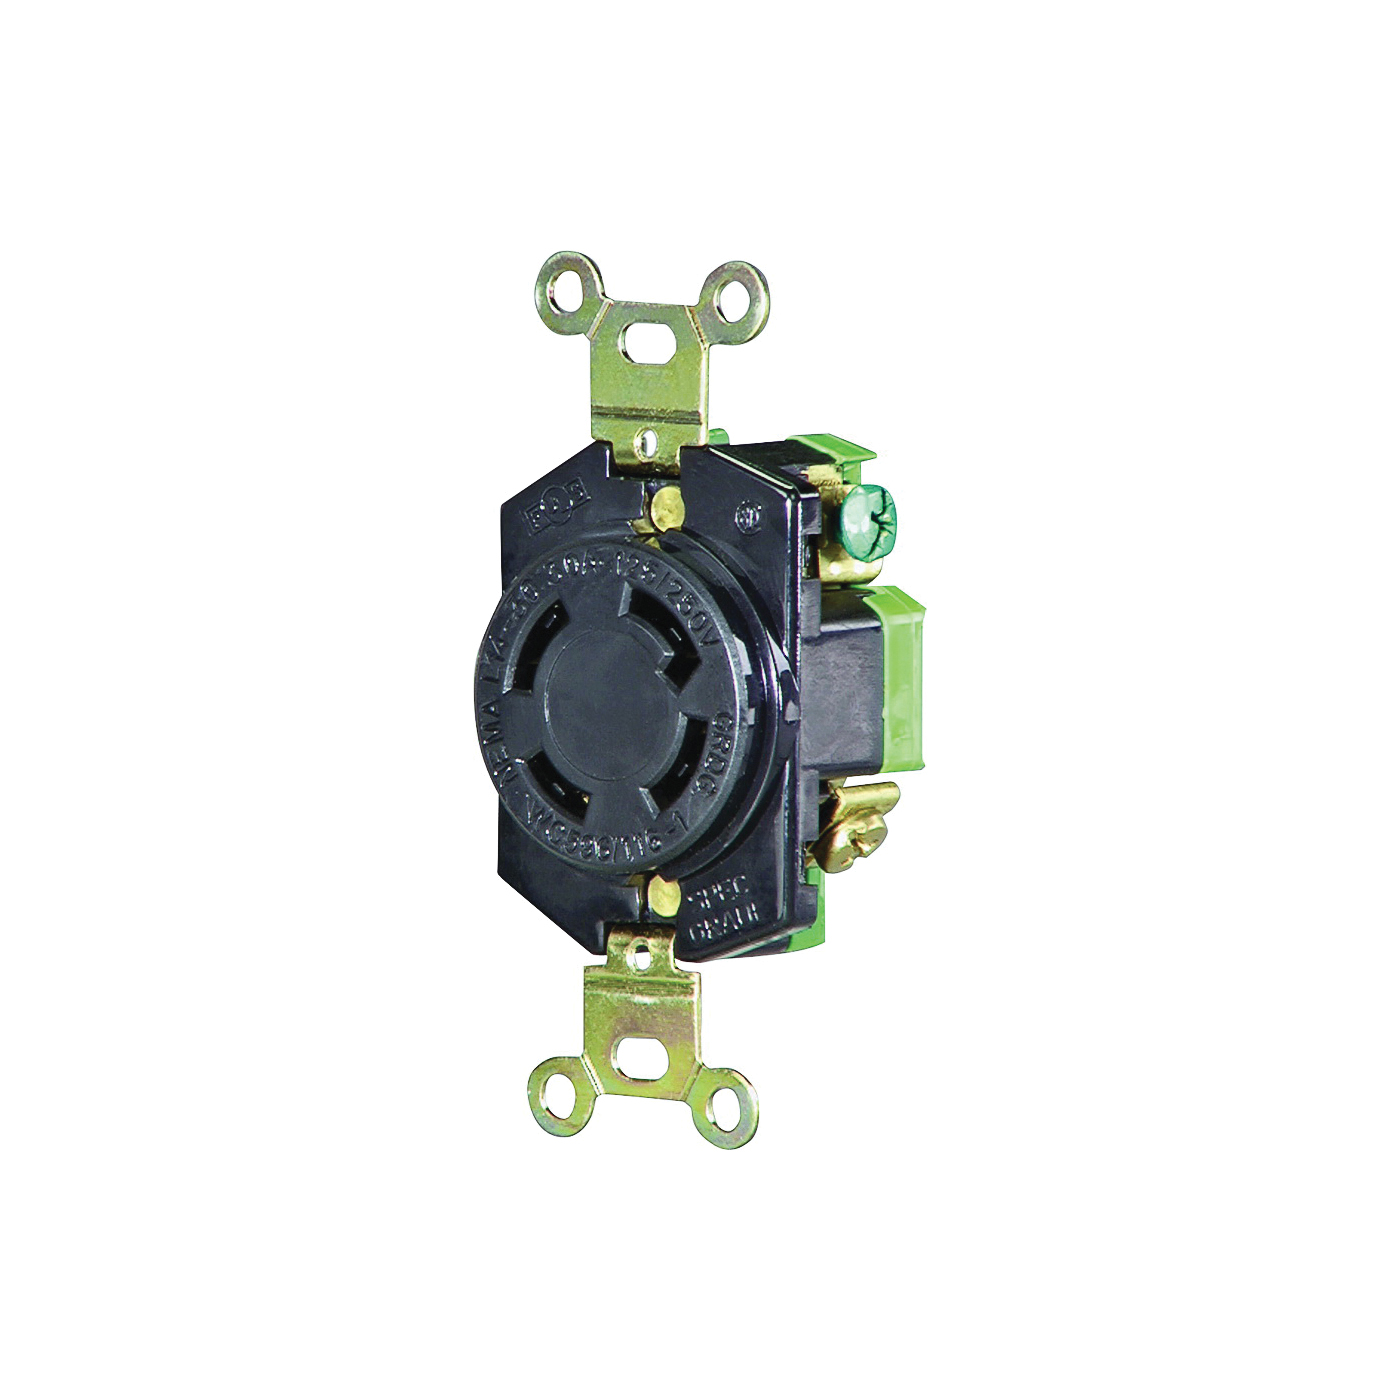 Picture of Eaton Wiring Devices L1430R Single Receptacle, 3-Pole, 125/250 V, 30 A, Back, Side Wiring, NEMA L14-30, Black